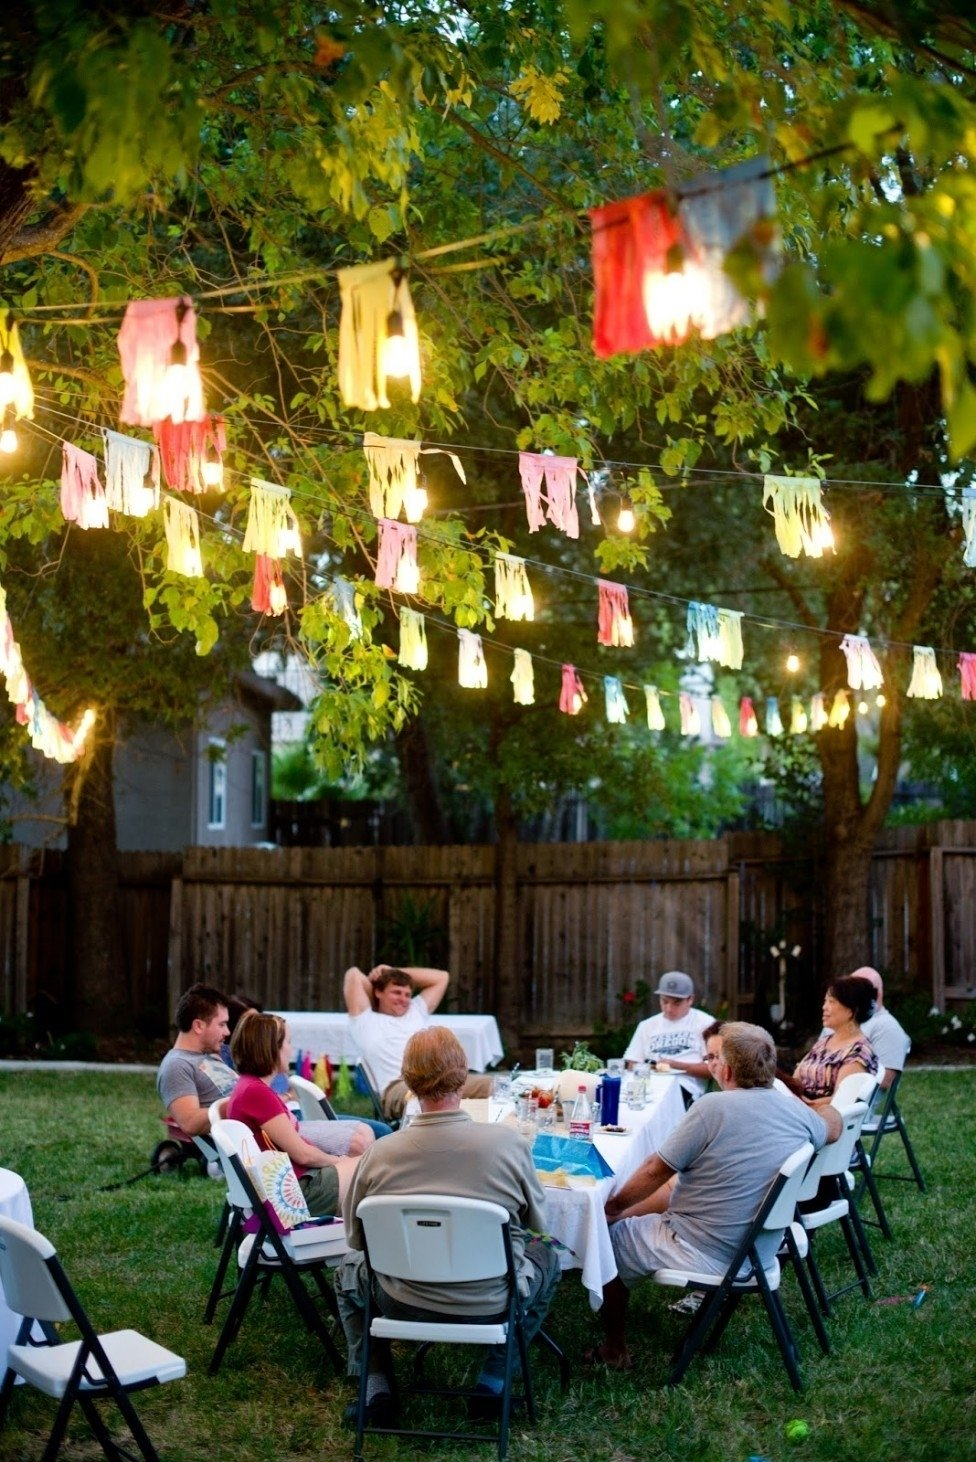 10 Fabulous Party Ideas For Adults At Home backyard party ideas for adults gogo papa new house party ideas